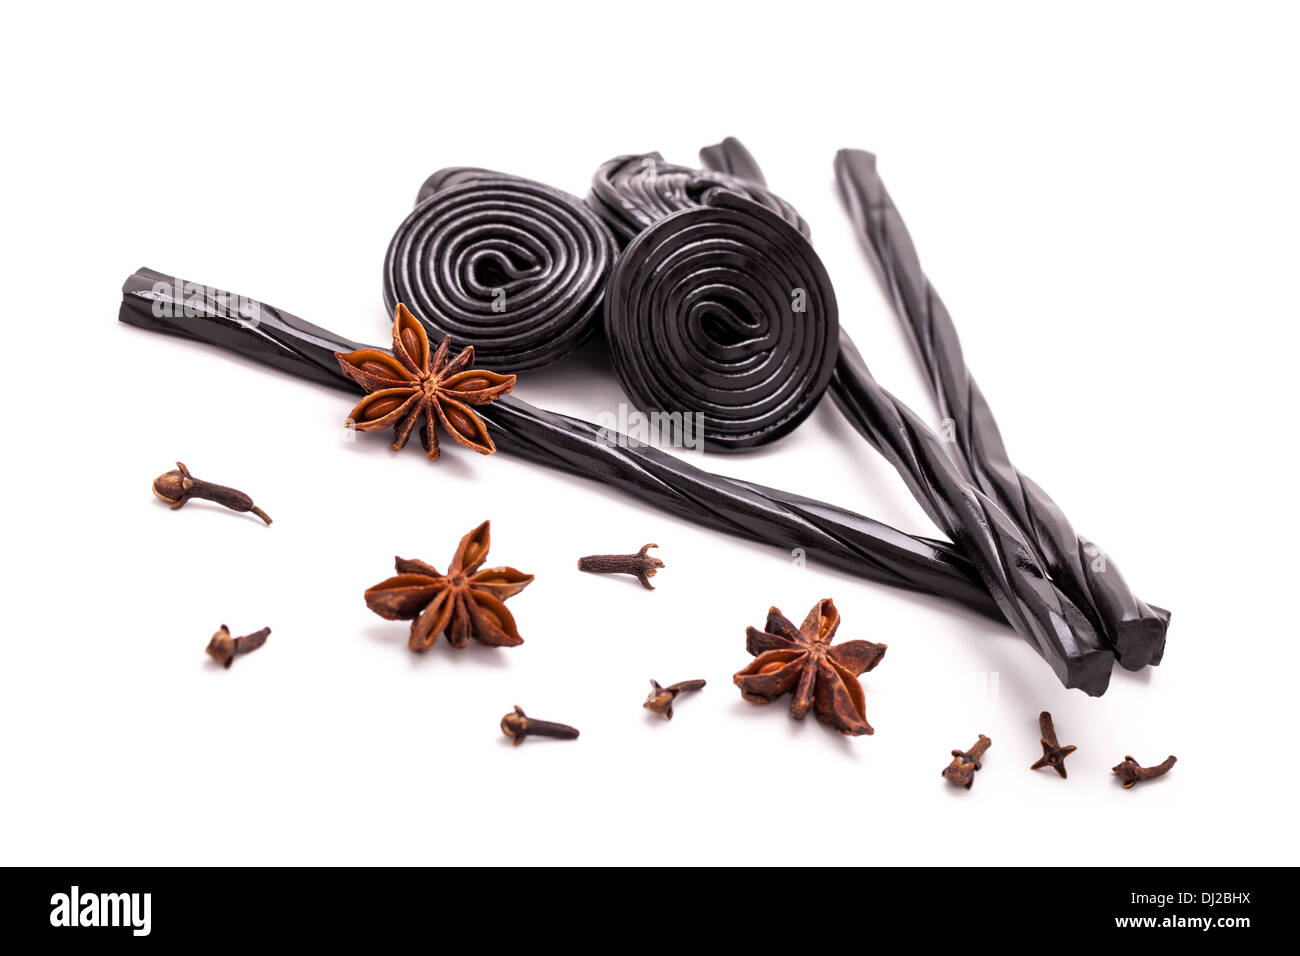 Licorice Candy, Star Anise And Cloves - Stock Image